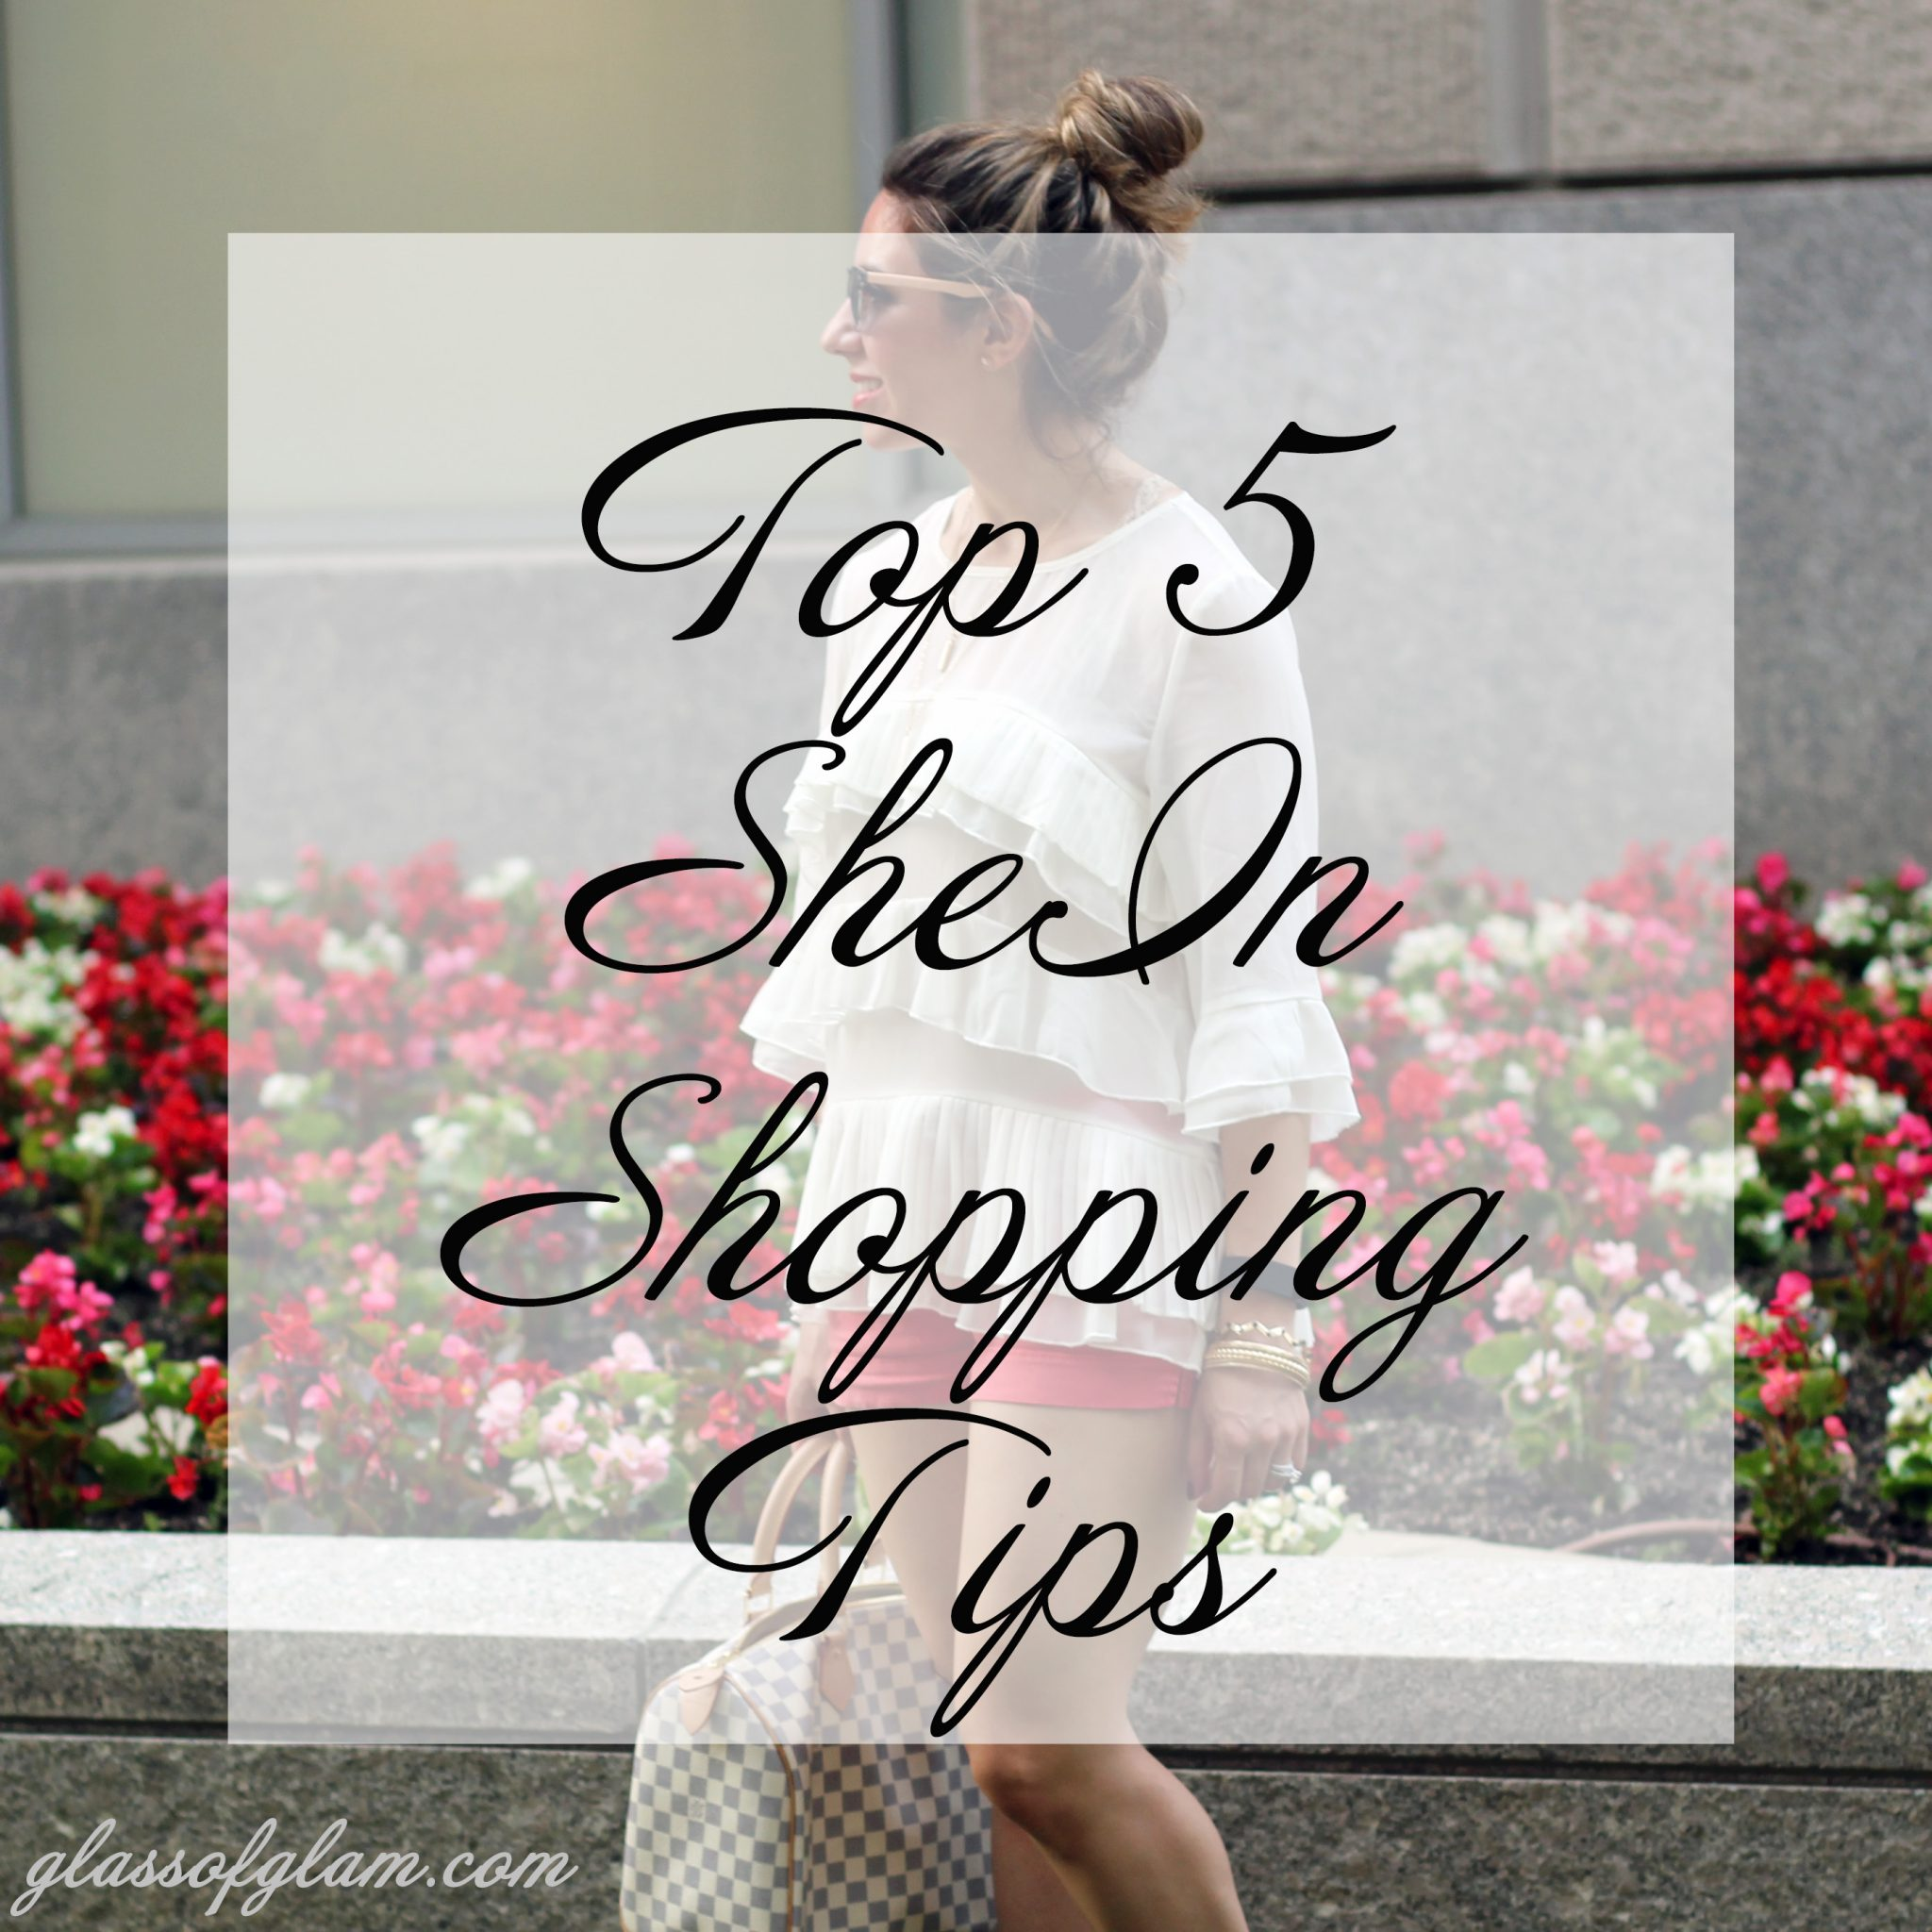 How to Shop at SheIn   Glass of Glam - My Top Five Tips for Shopping at SheIn by popular DC fashion blogger Glass of Glam